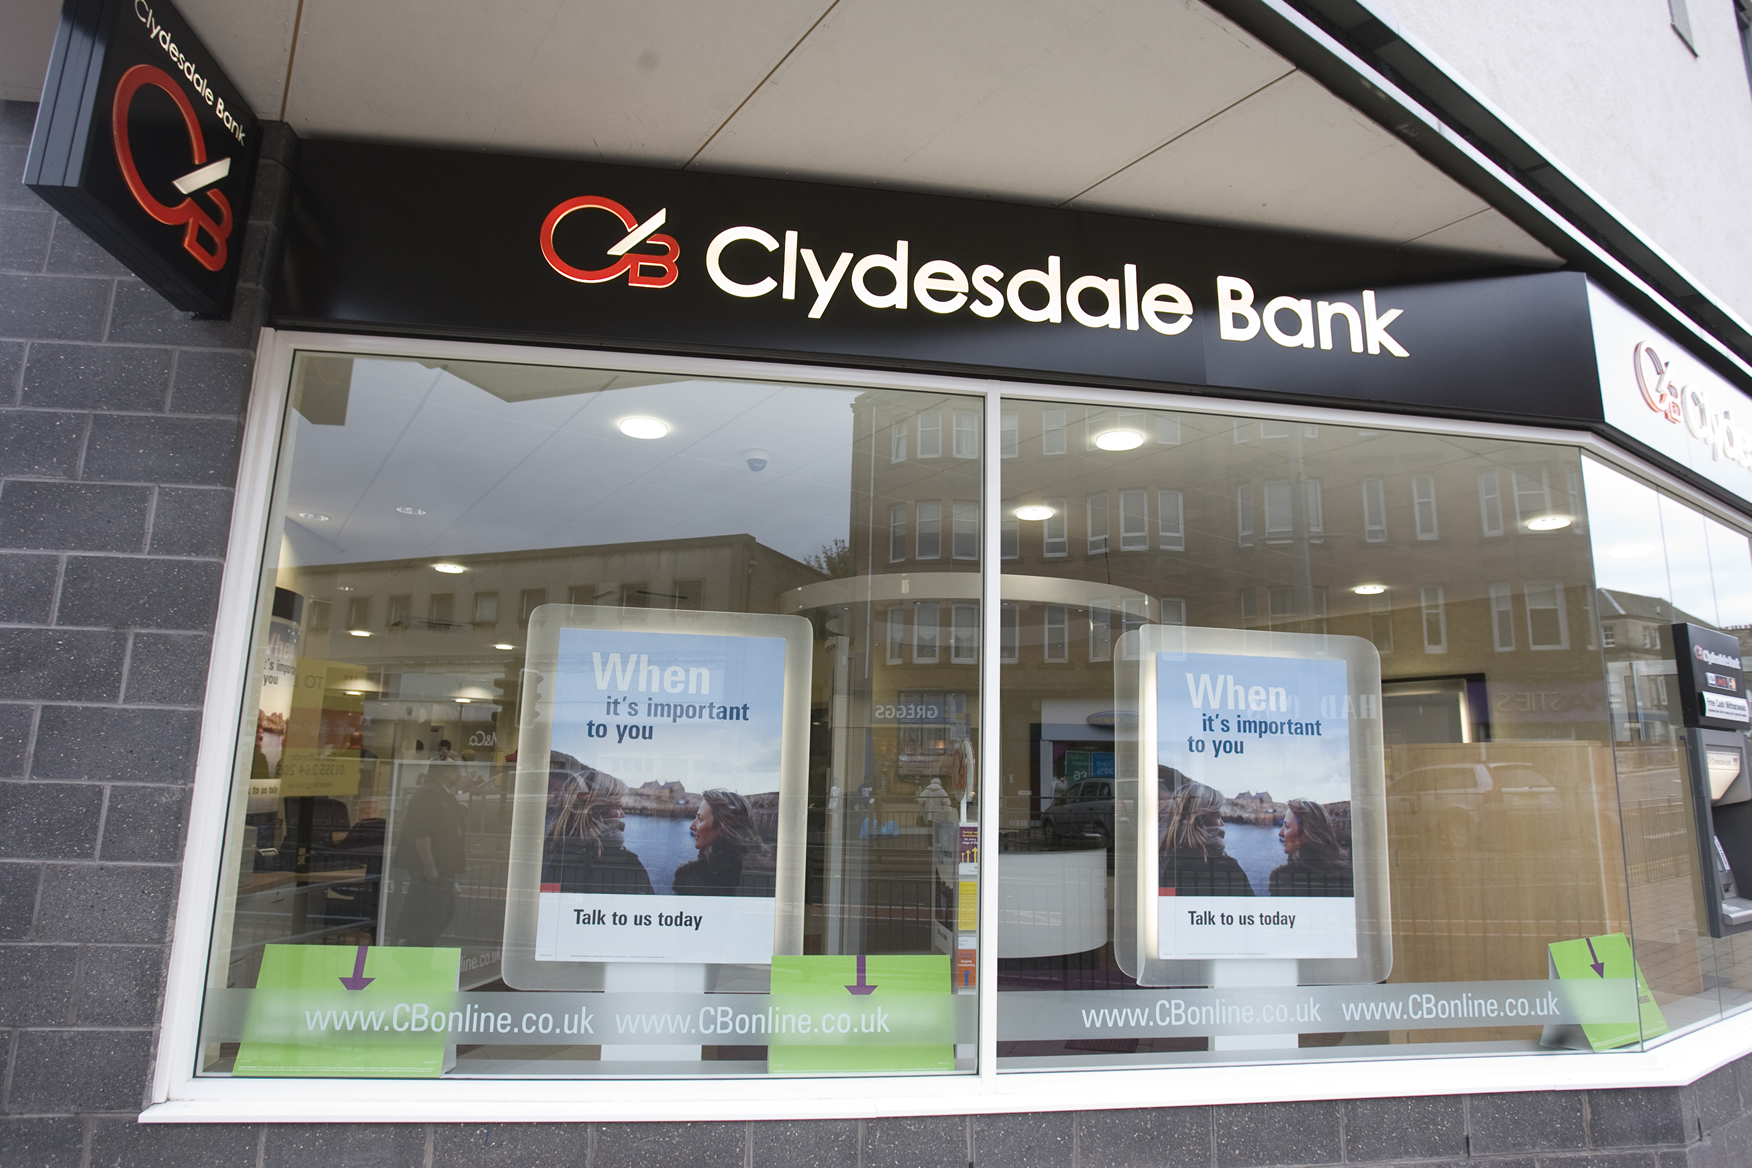 Clydesdale Bank shopfront